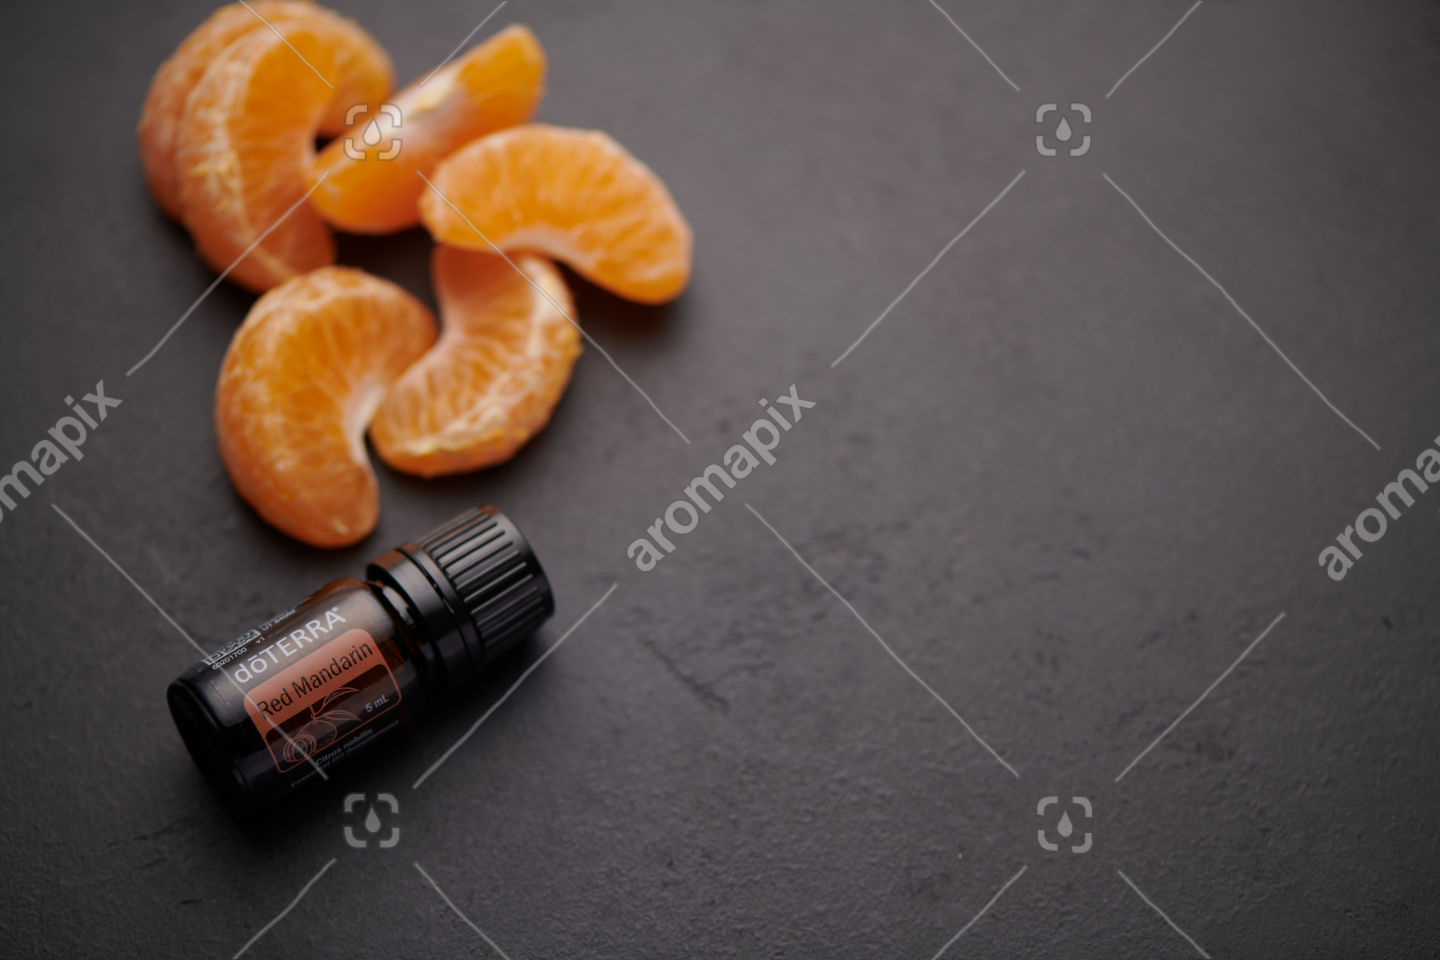 doTERRA Red Mandarin product and mandarin pieces on black background